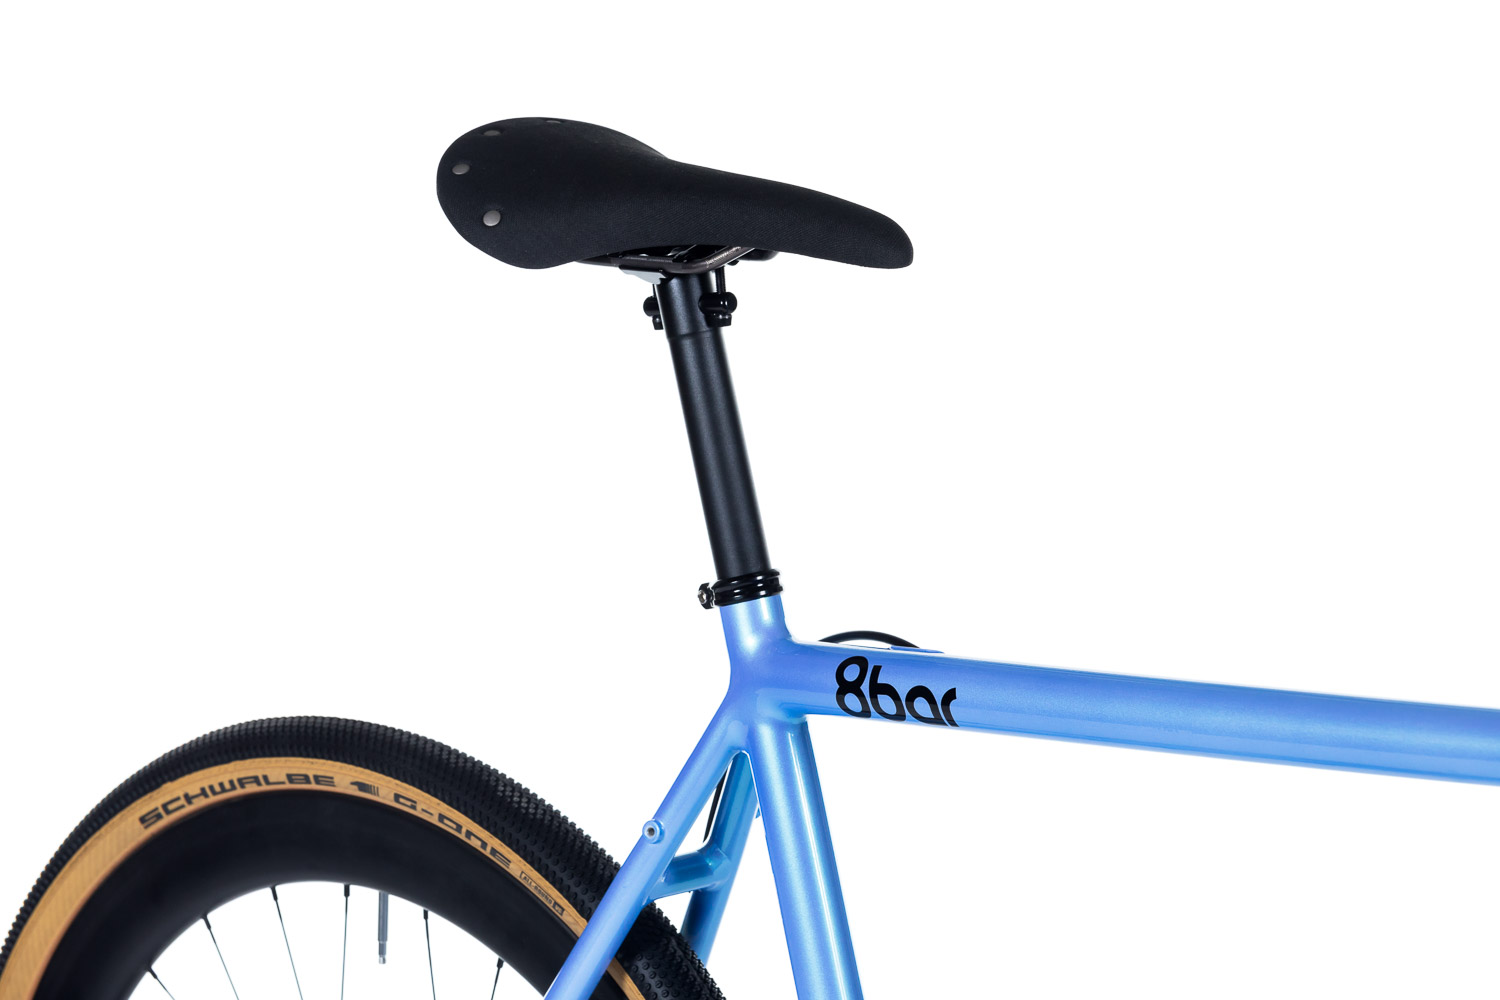 8bar-complete-bike-mitte-gravel-pro-blue-studio-lr-5